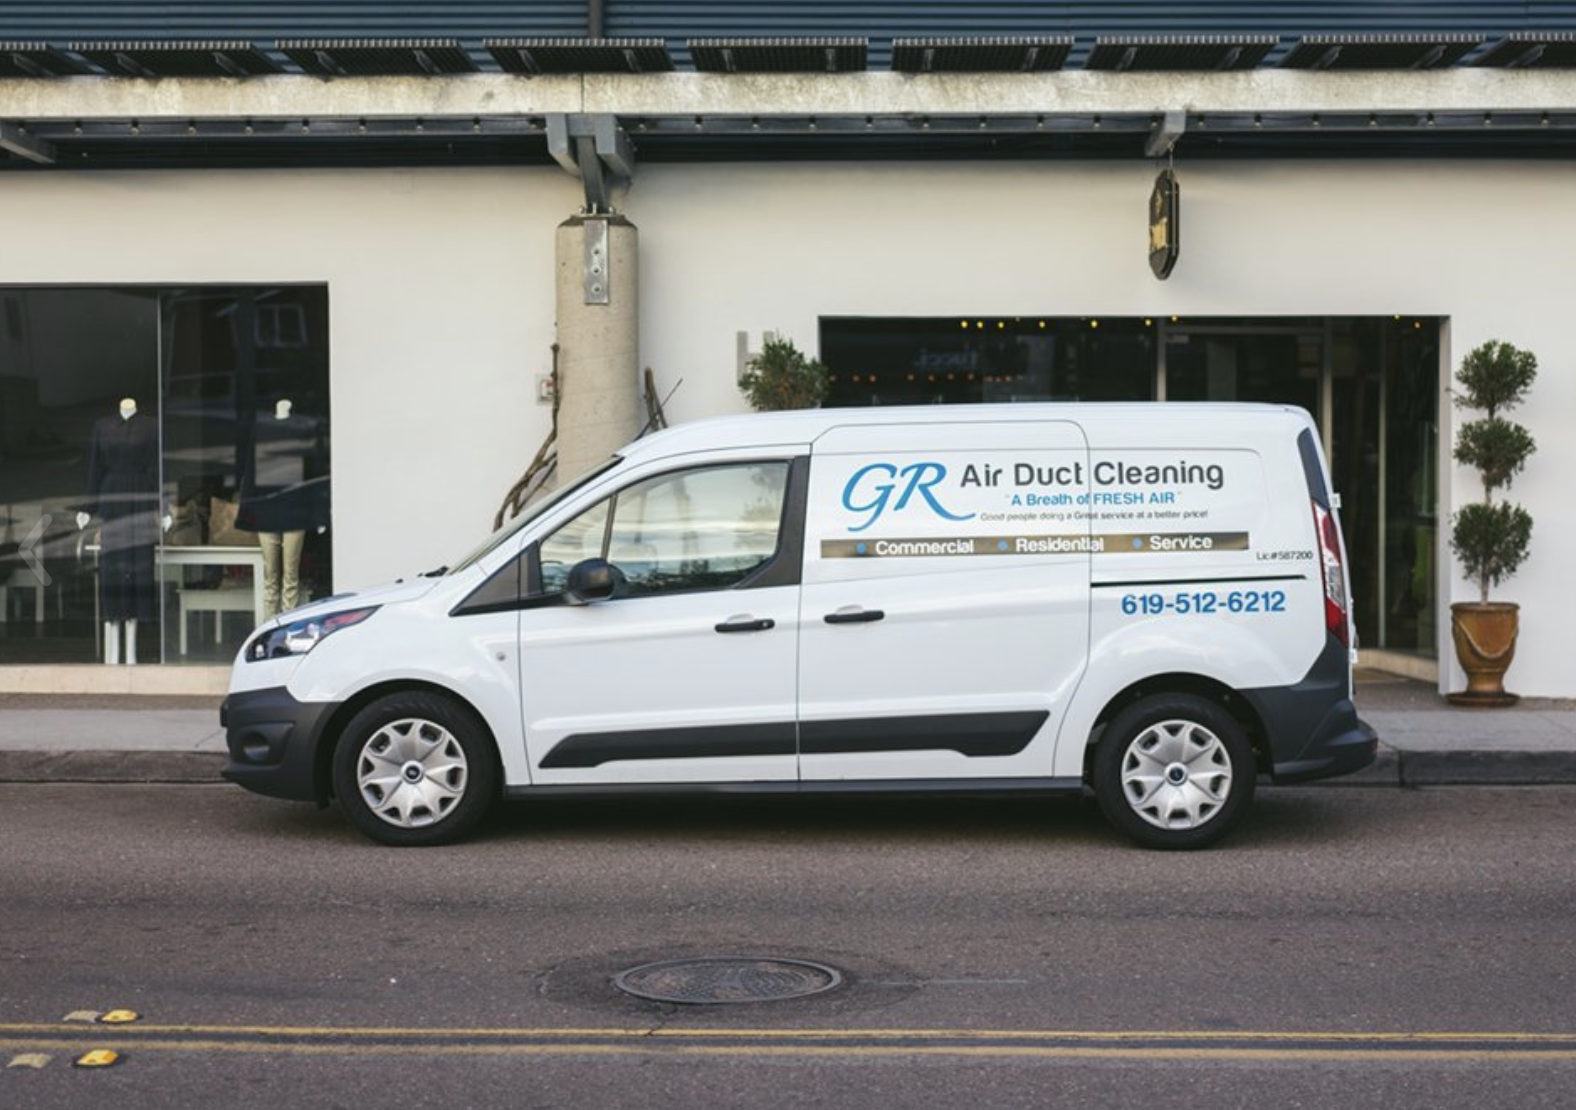 GR Air Duct Cleaning